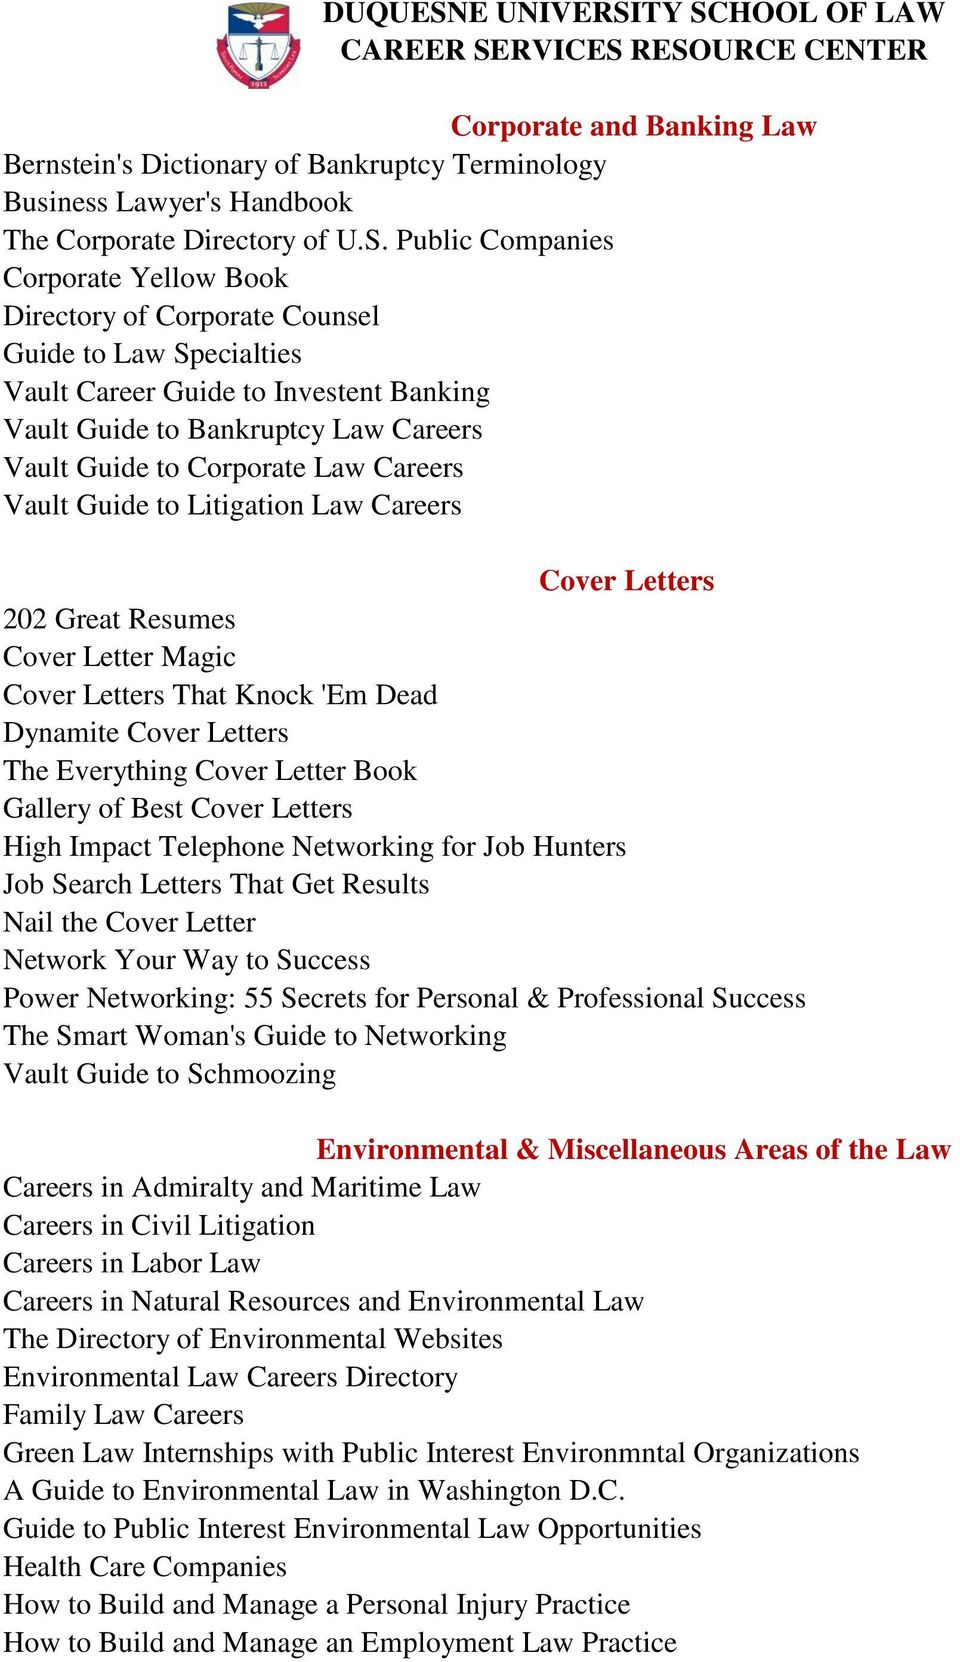 DUQUESNE UNIVERSITY SCHOOL OF LAW CAREER SERVICES RESOURCE CENTER - PDF